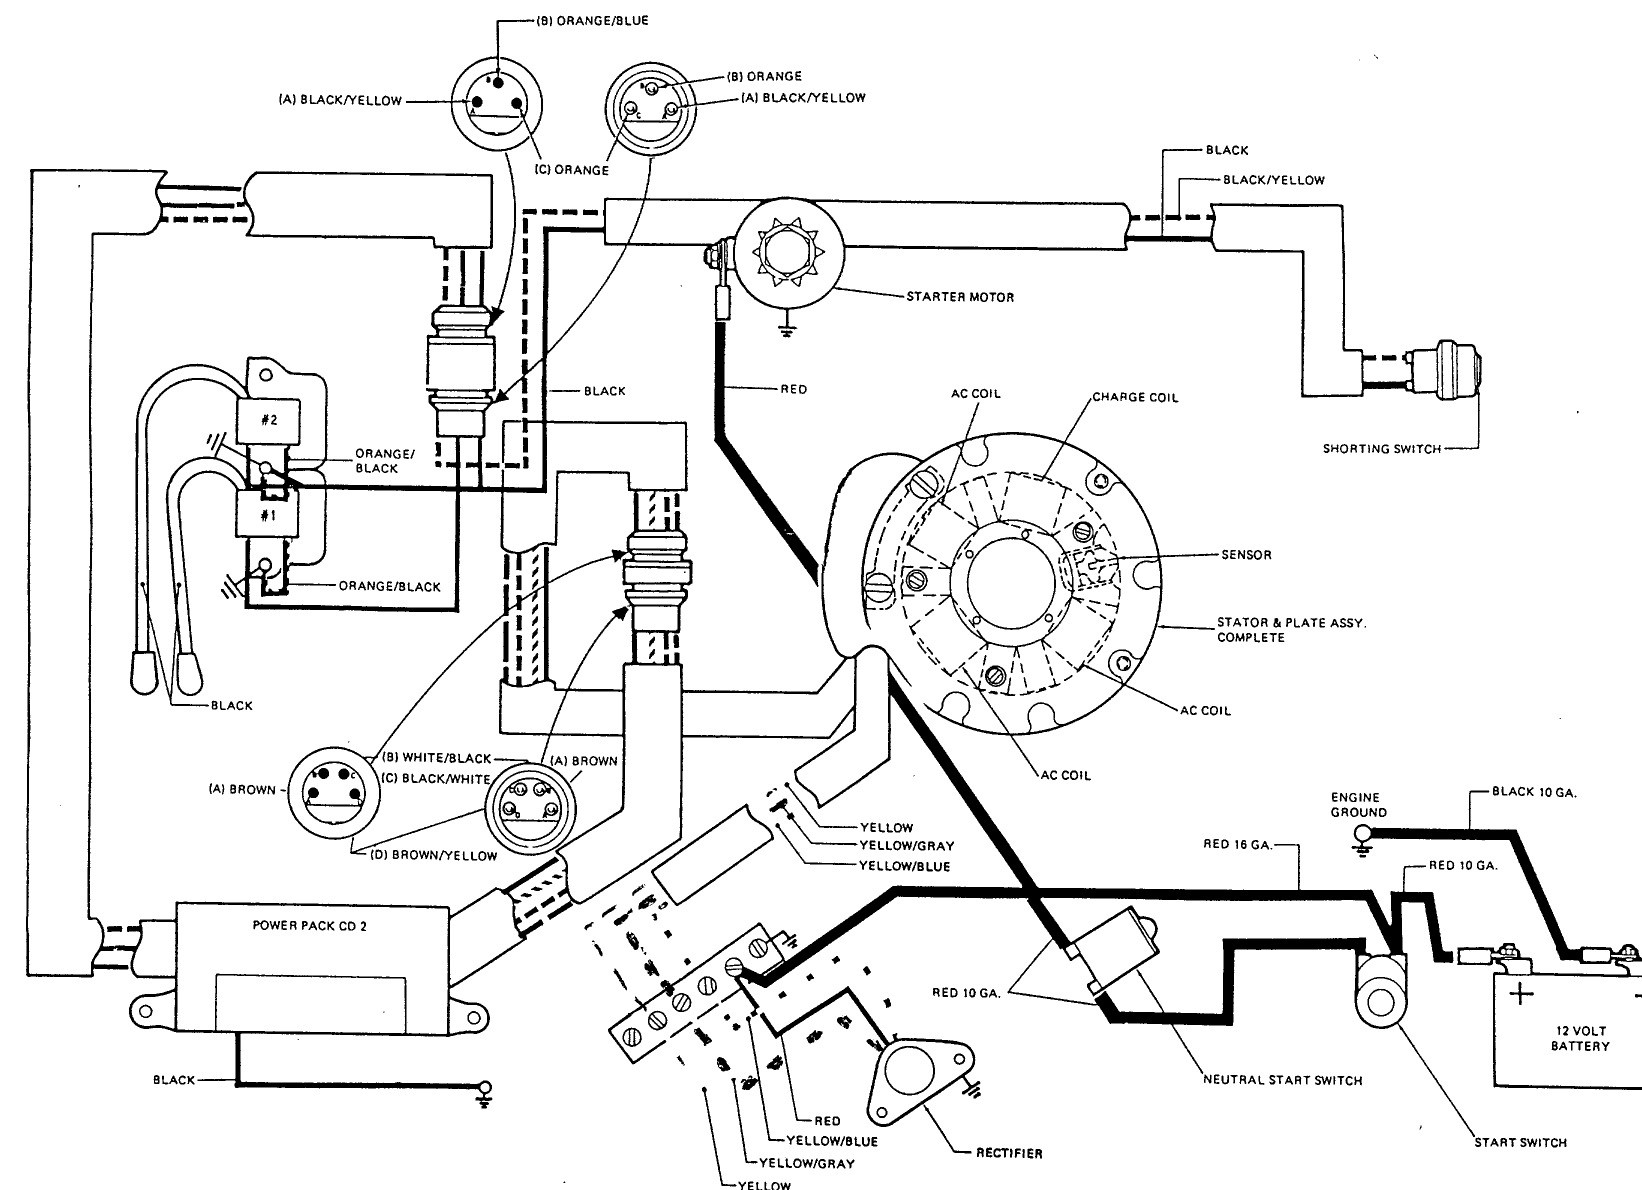 Key Switch Wire Diagram for A Mercury Outboaed with Chock Maintaining Johnson 9 9 Troubleshooting Of Key Switch Wire Diagram for A Mercury Outboaed with Chock